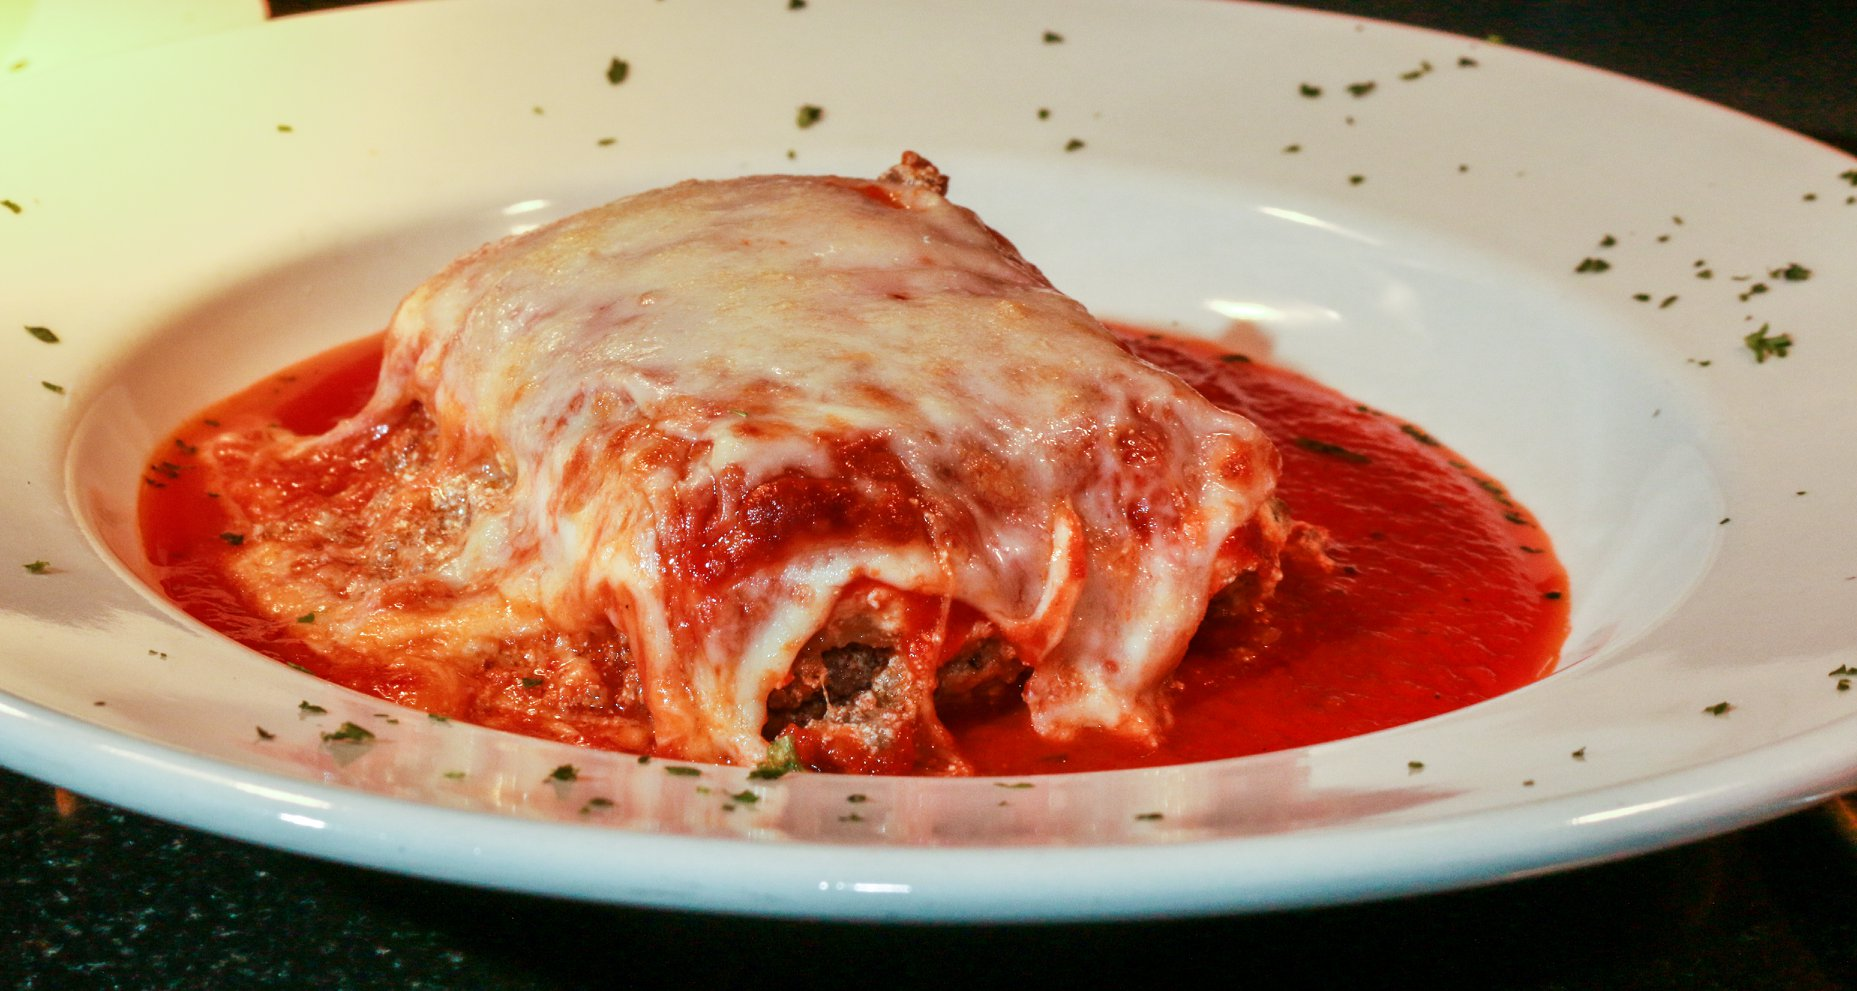 Baked lasagna on a plate topped with marinara sauce and melted mozzarella cheese.